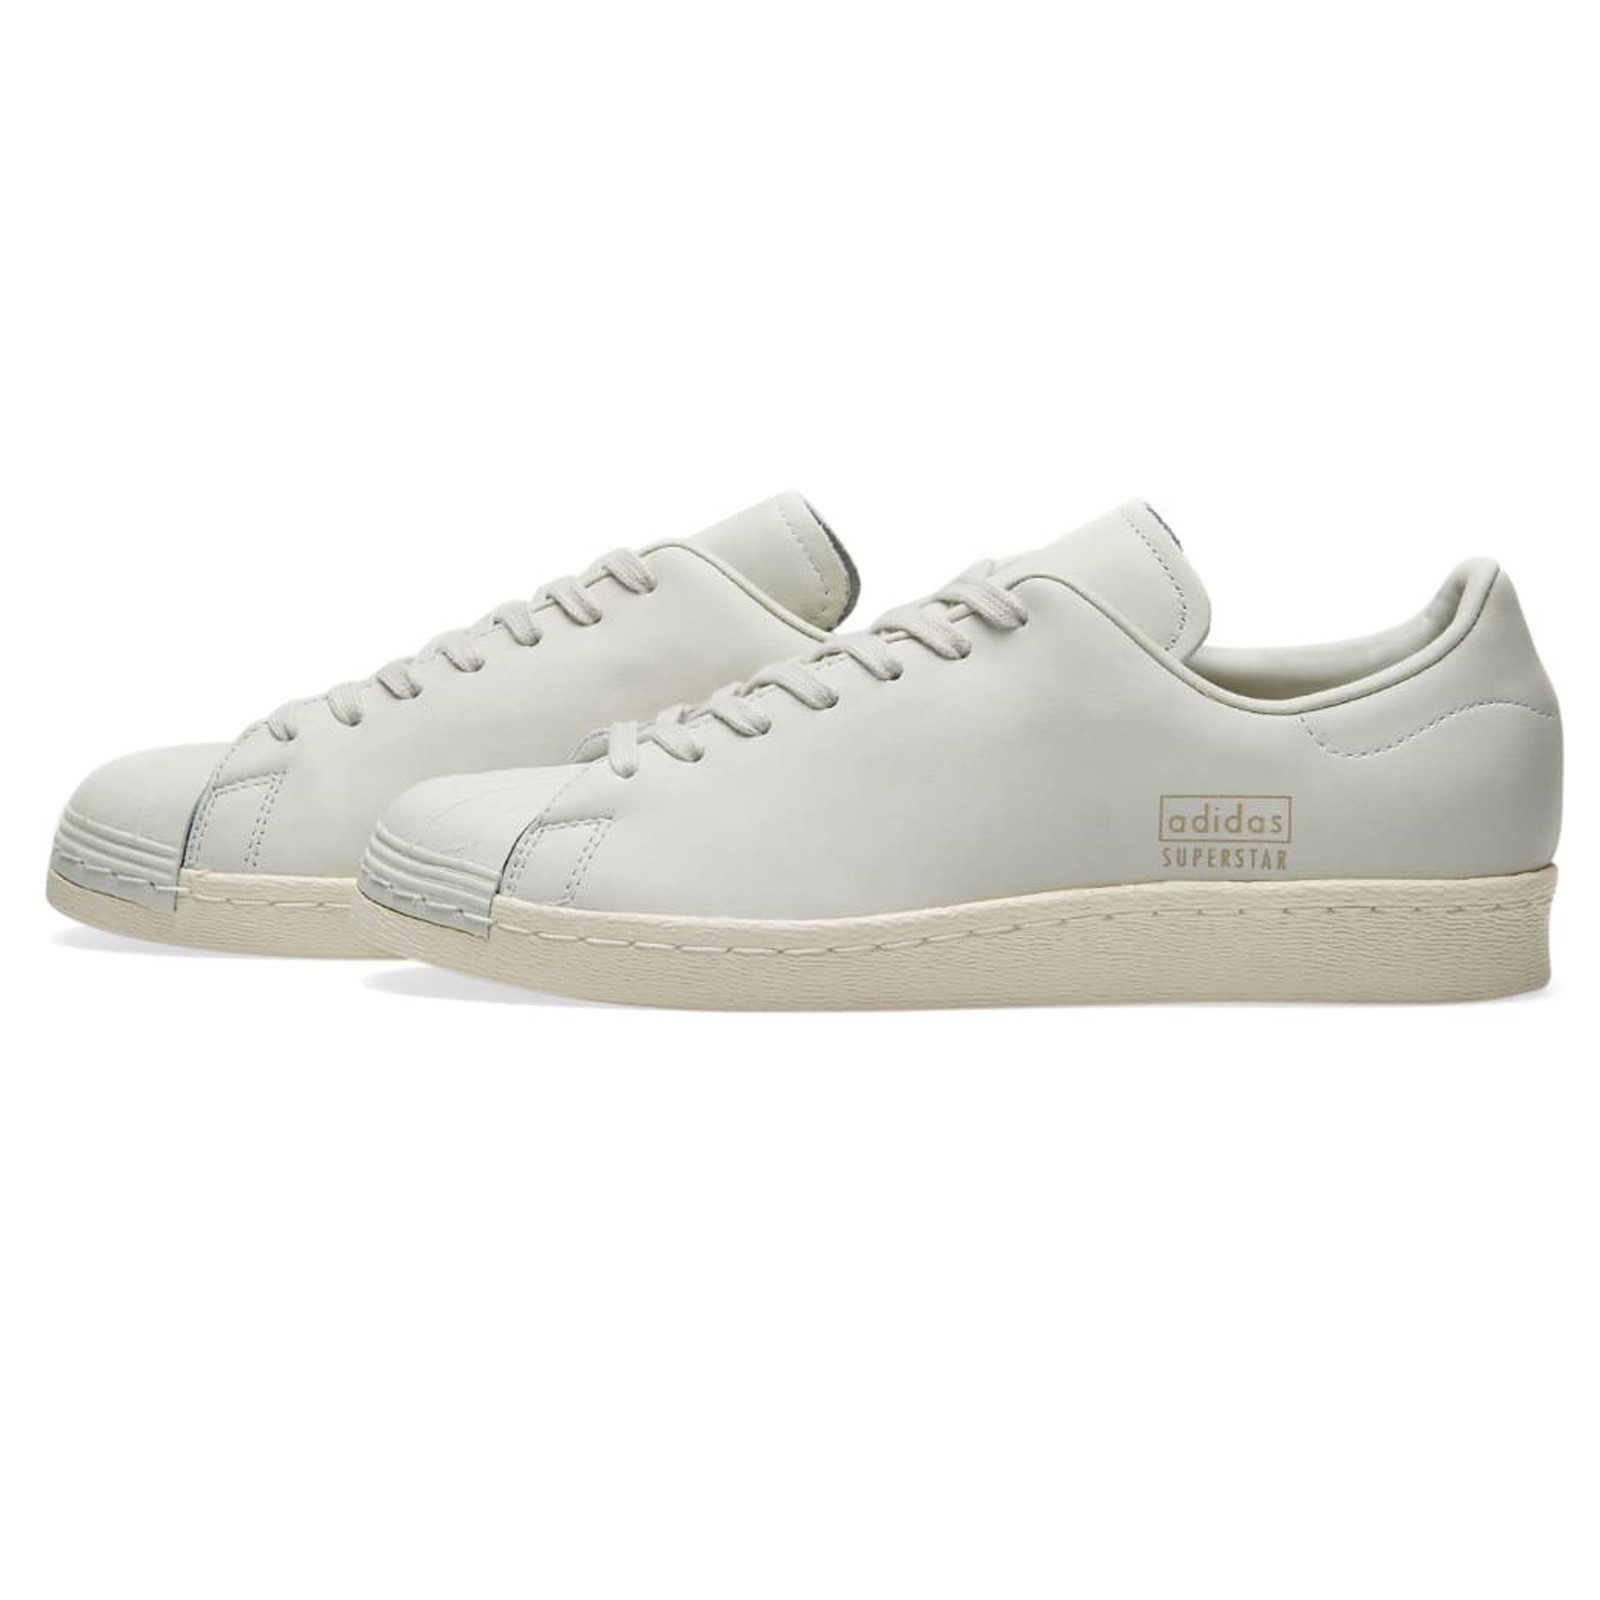 adidas Originals Superstar 80s Clean Sneaker Schuhe Leder BB0169 Chrystal White